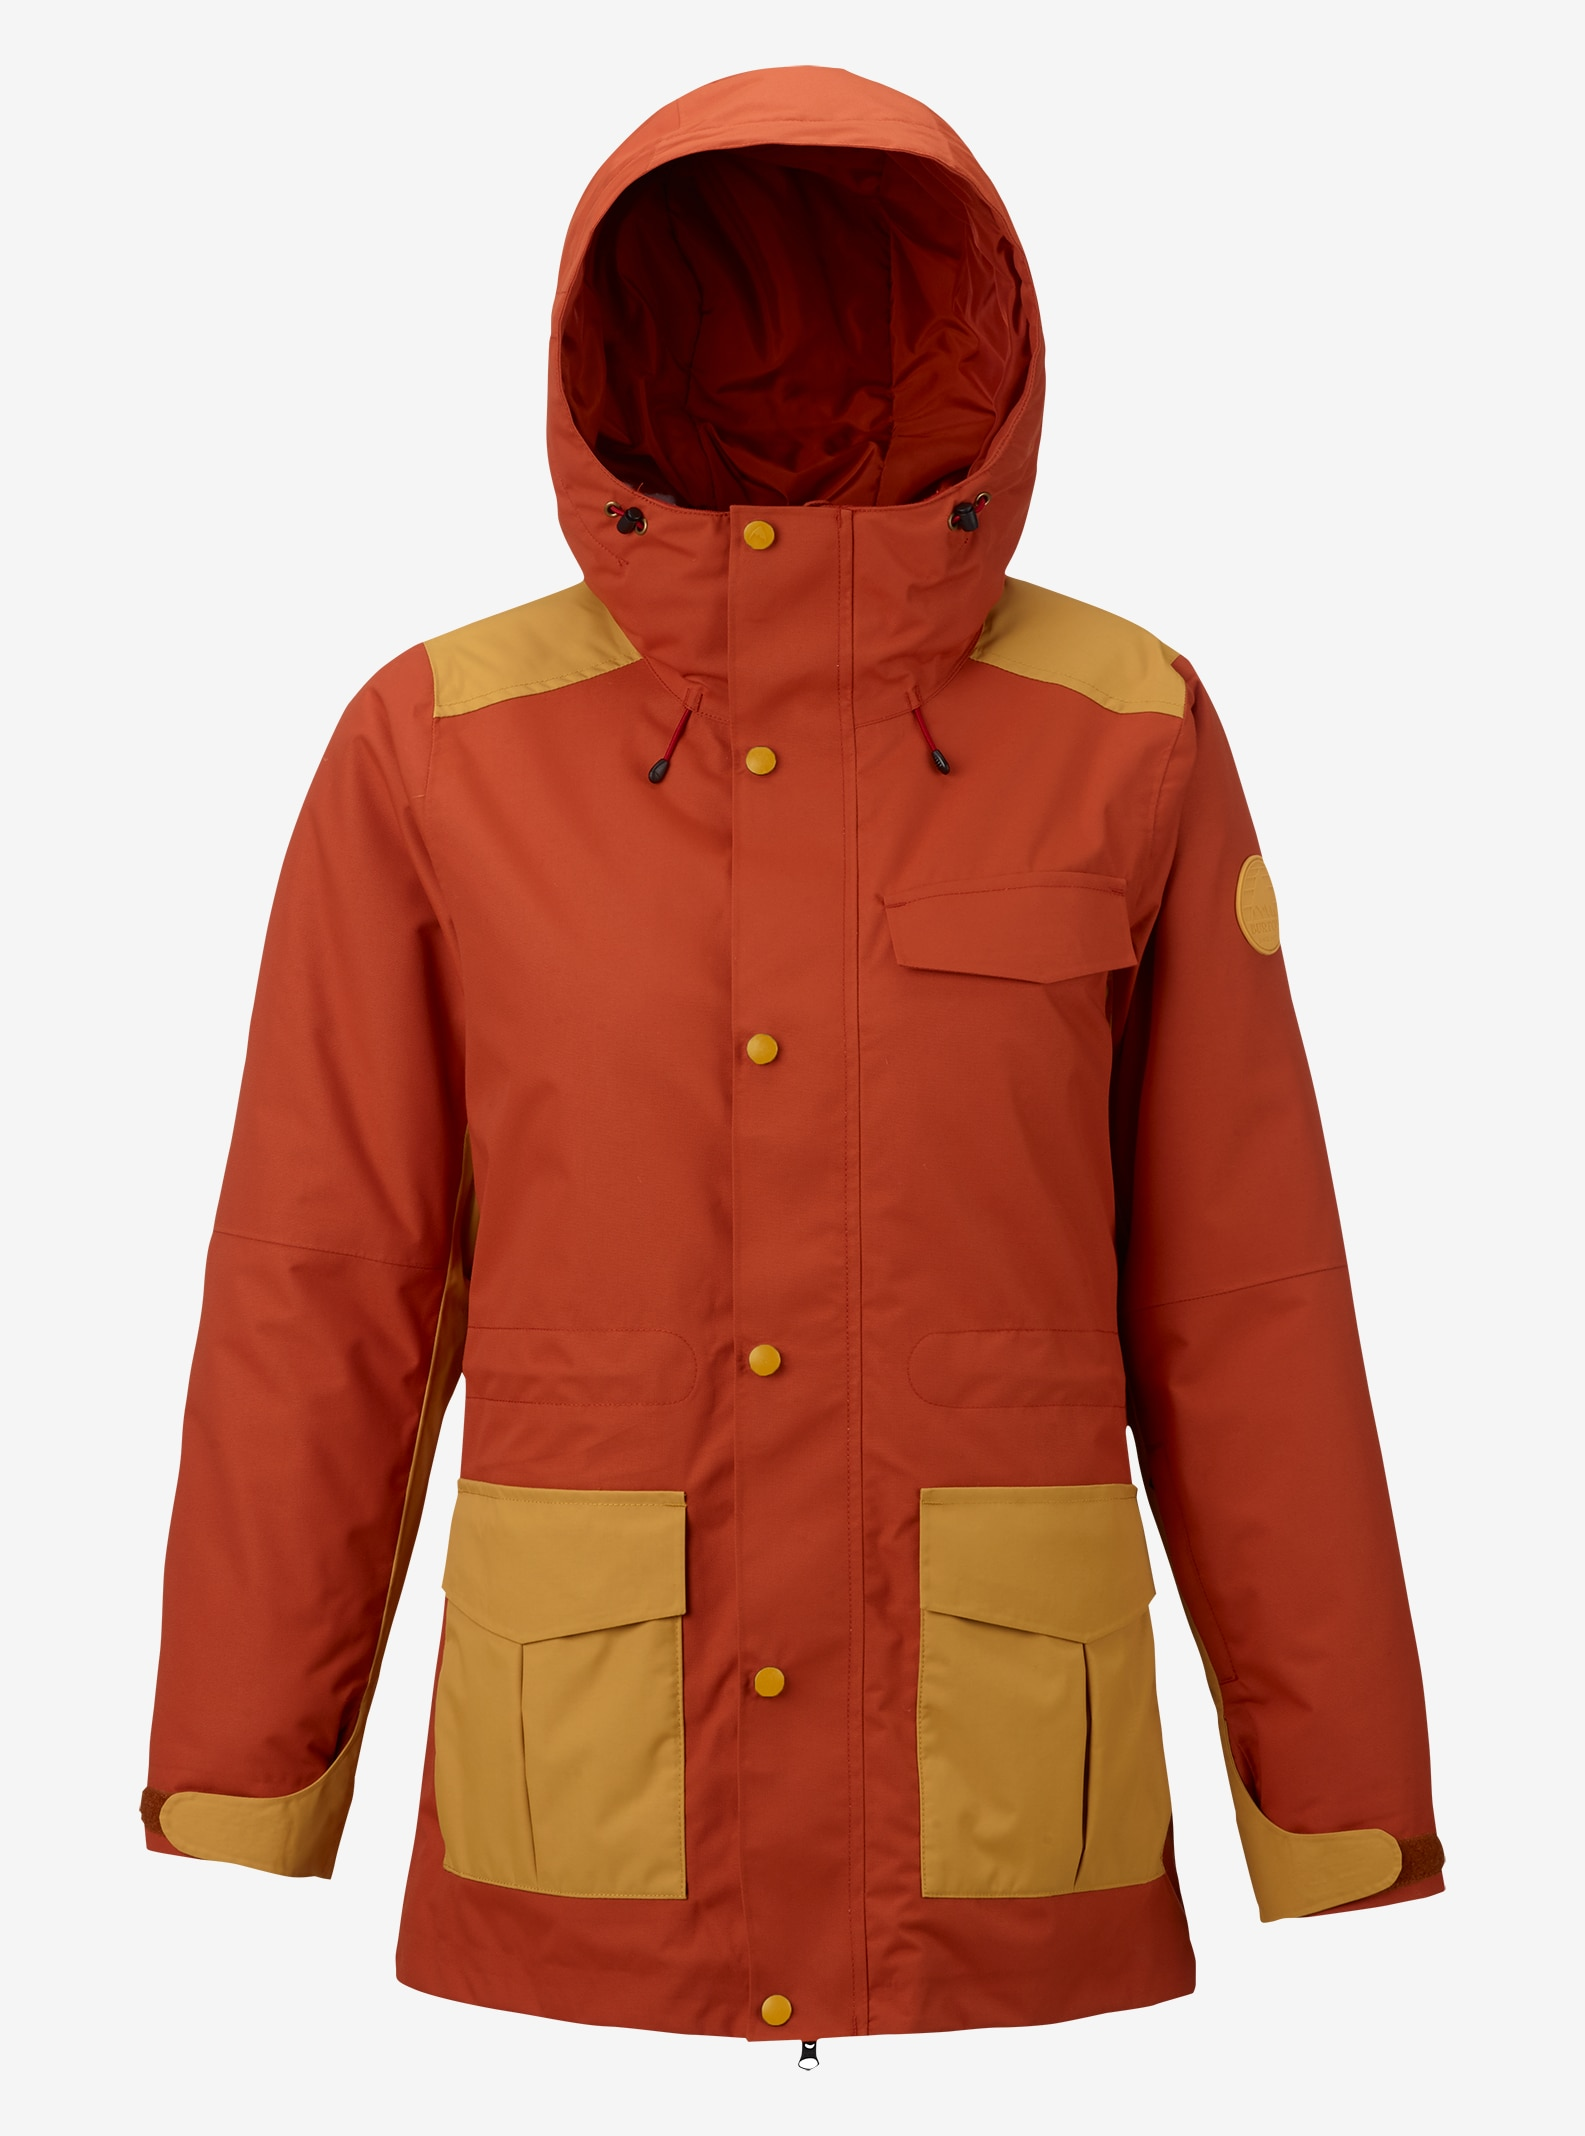 Women's Burton Runestone Jacket shown in Persimmon / Ochre